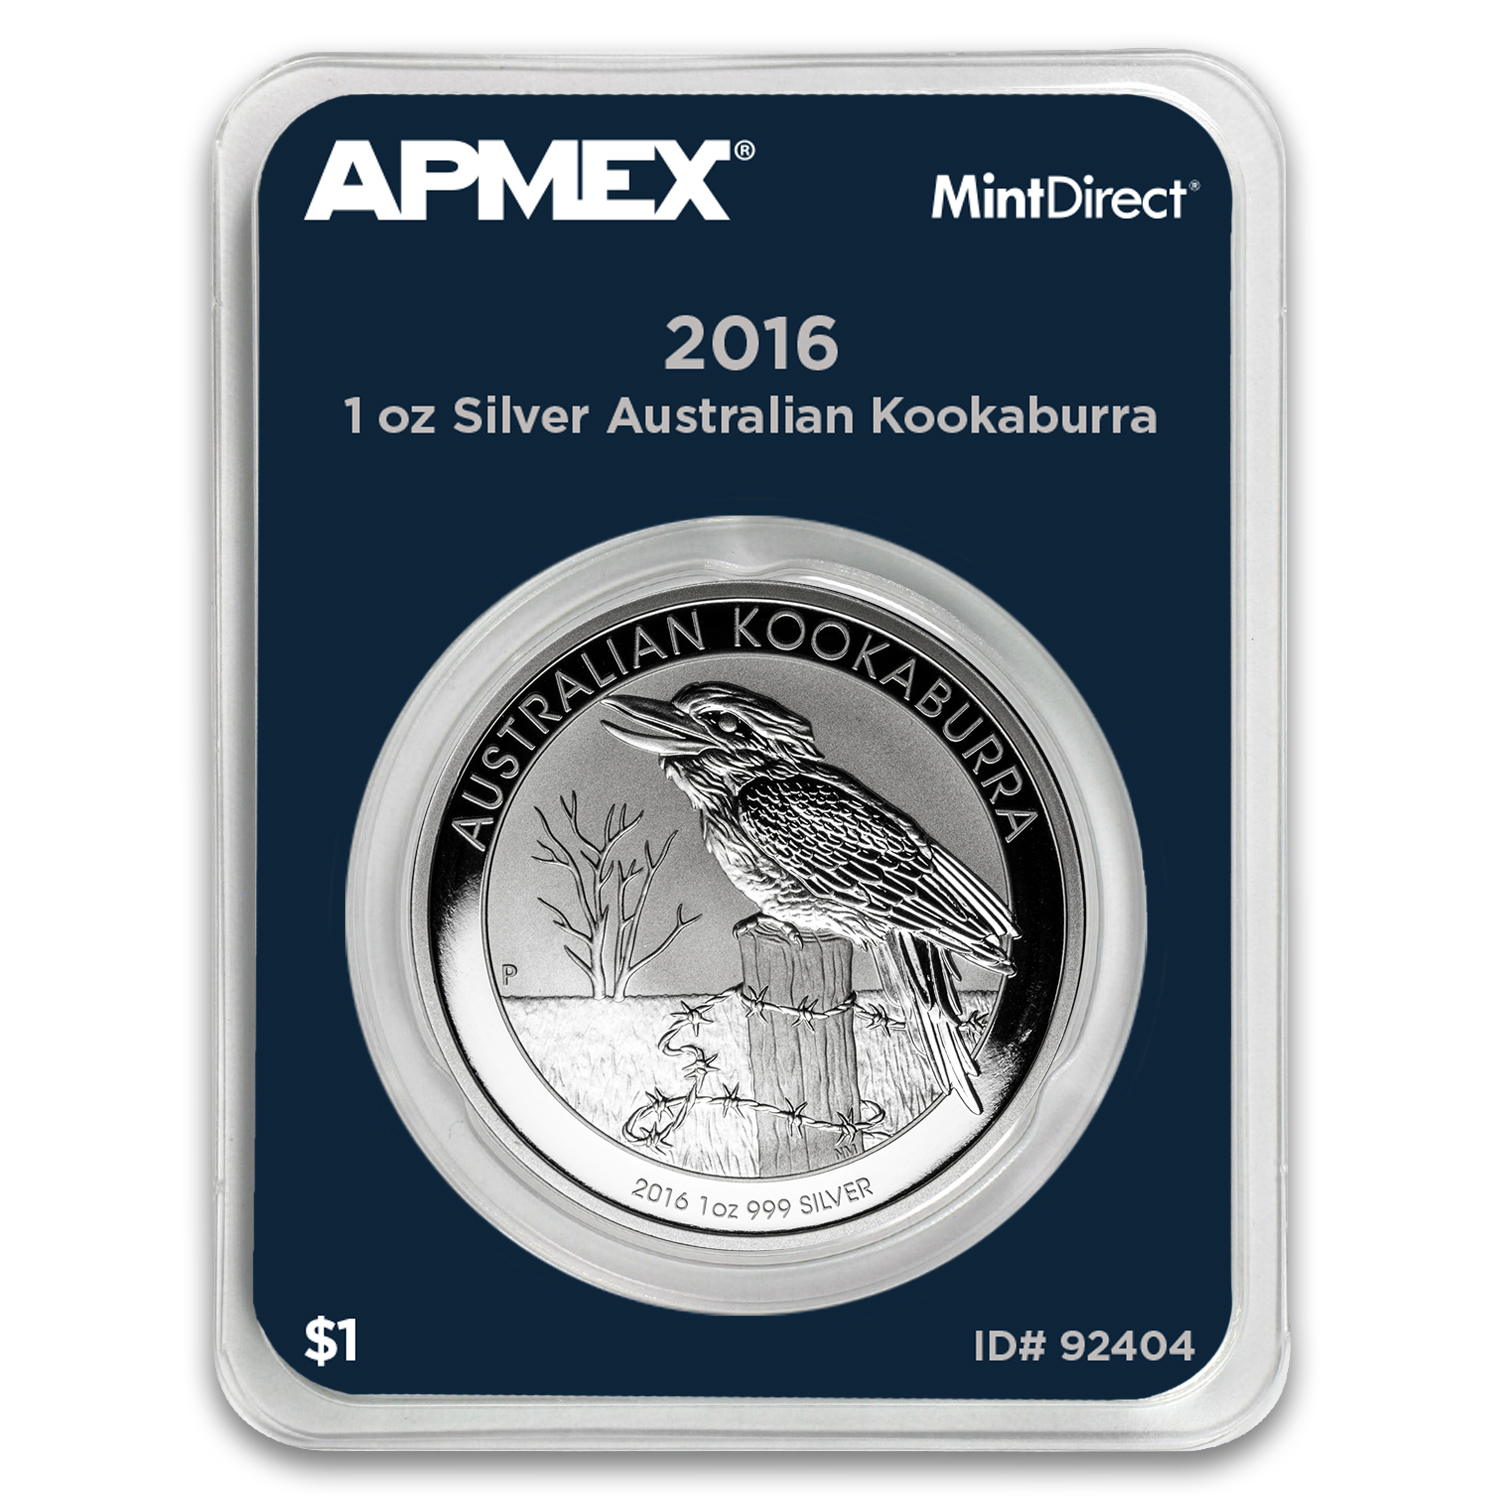 2016 Australia 1 oz Silver Kookaburra BU (MintDirect® Single)